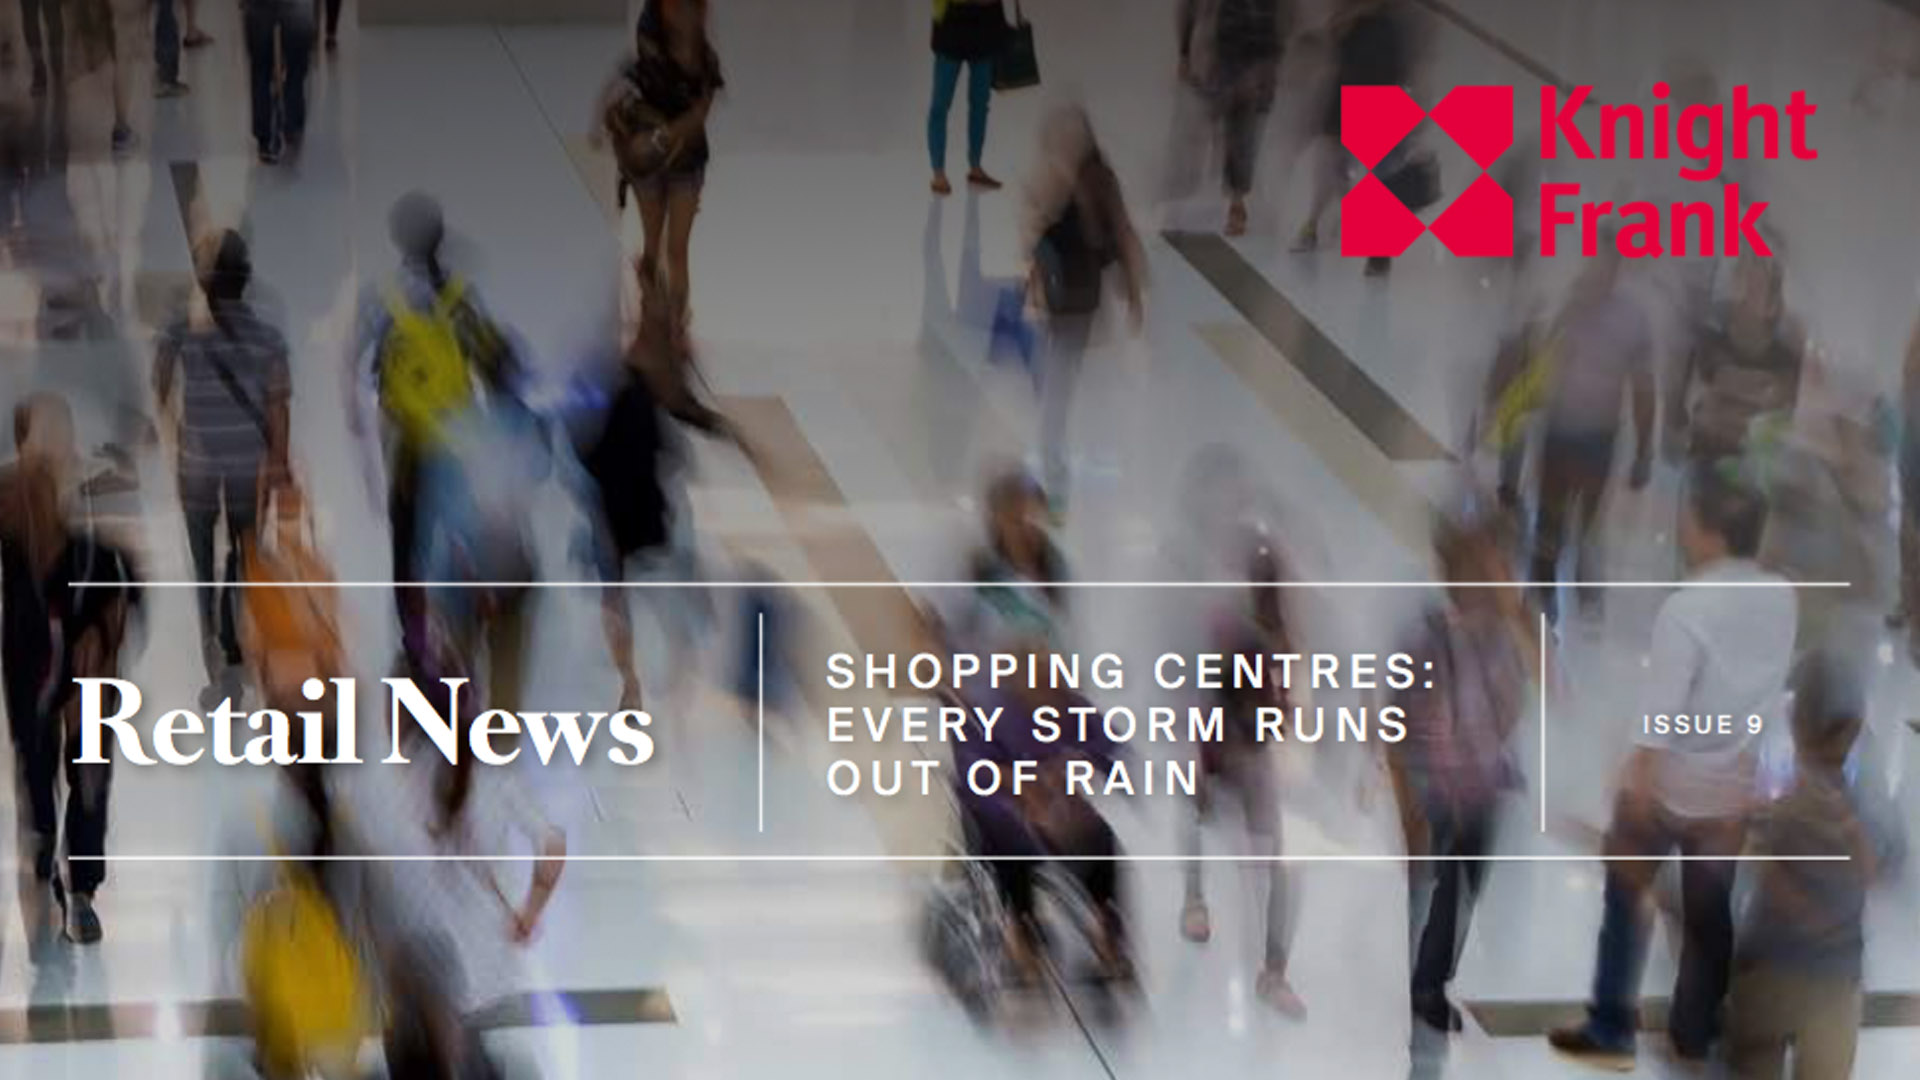 Community shopping centres as the 'beating heart of the community'